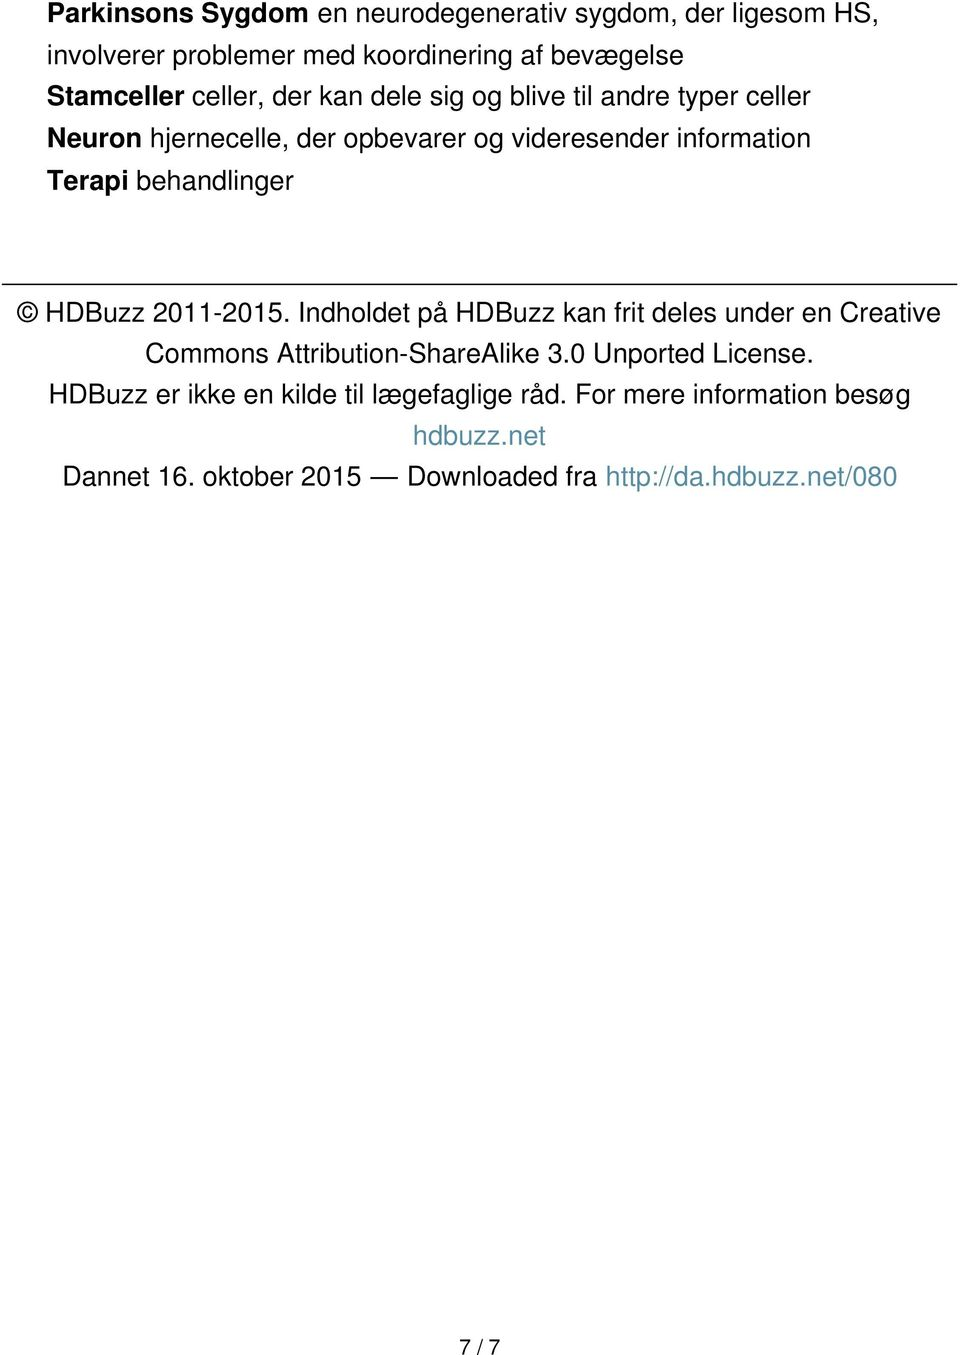 HDBuzz 2011-2015. Indholdet på HDBuzz kan frit deles under en Creative Commons Attribution-ShareAlike 3.0 Unported License.